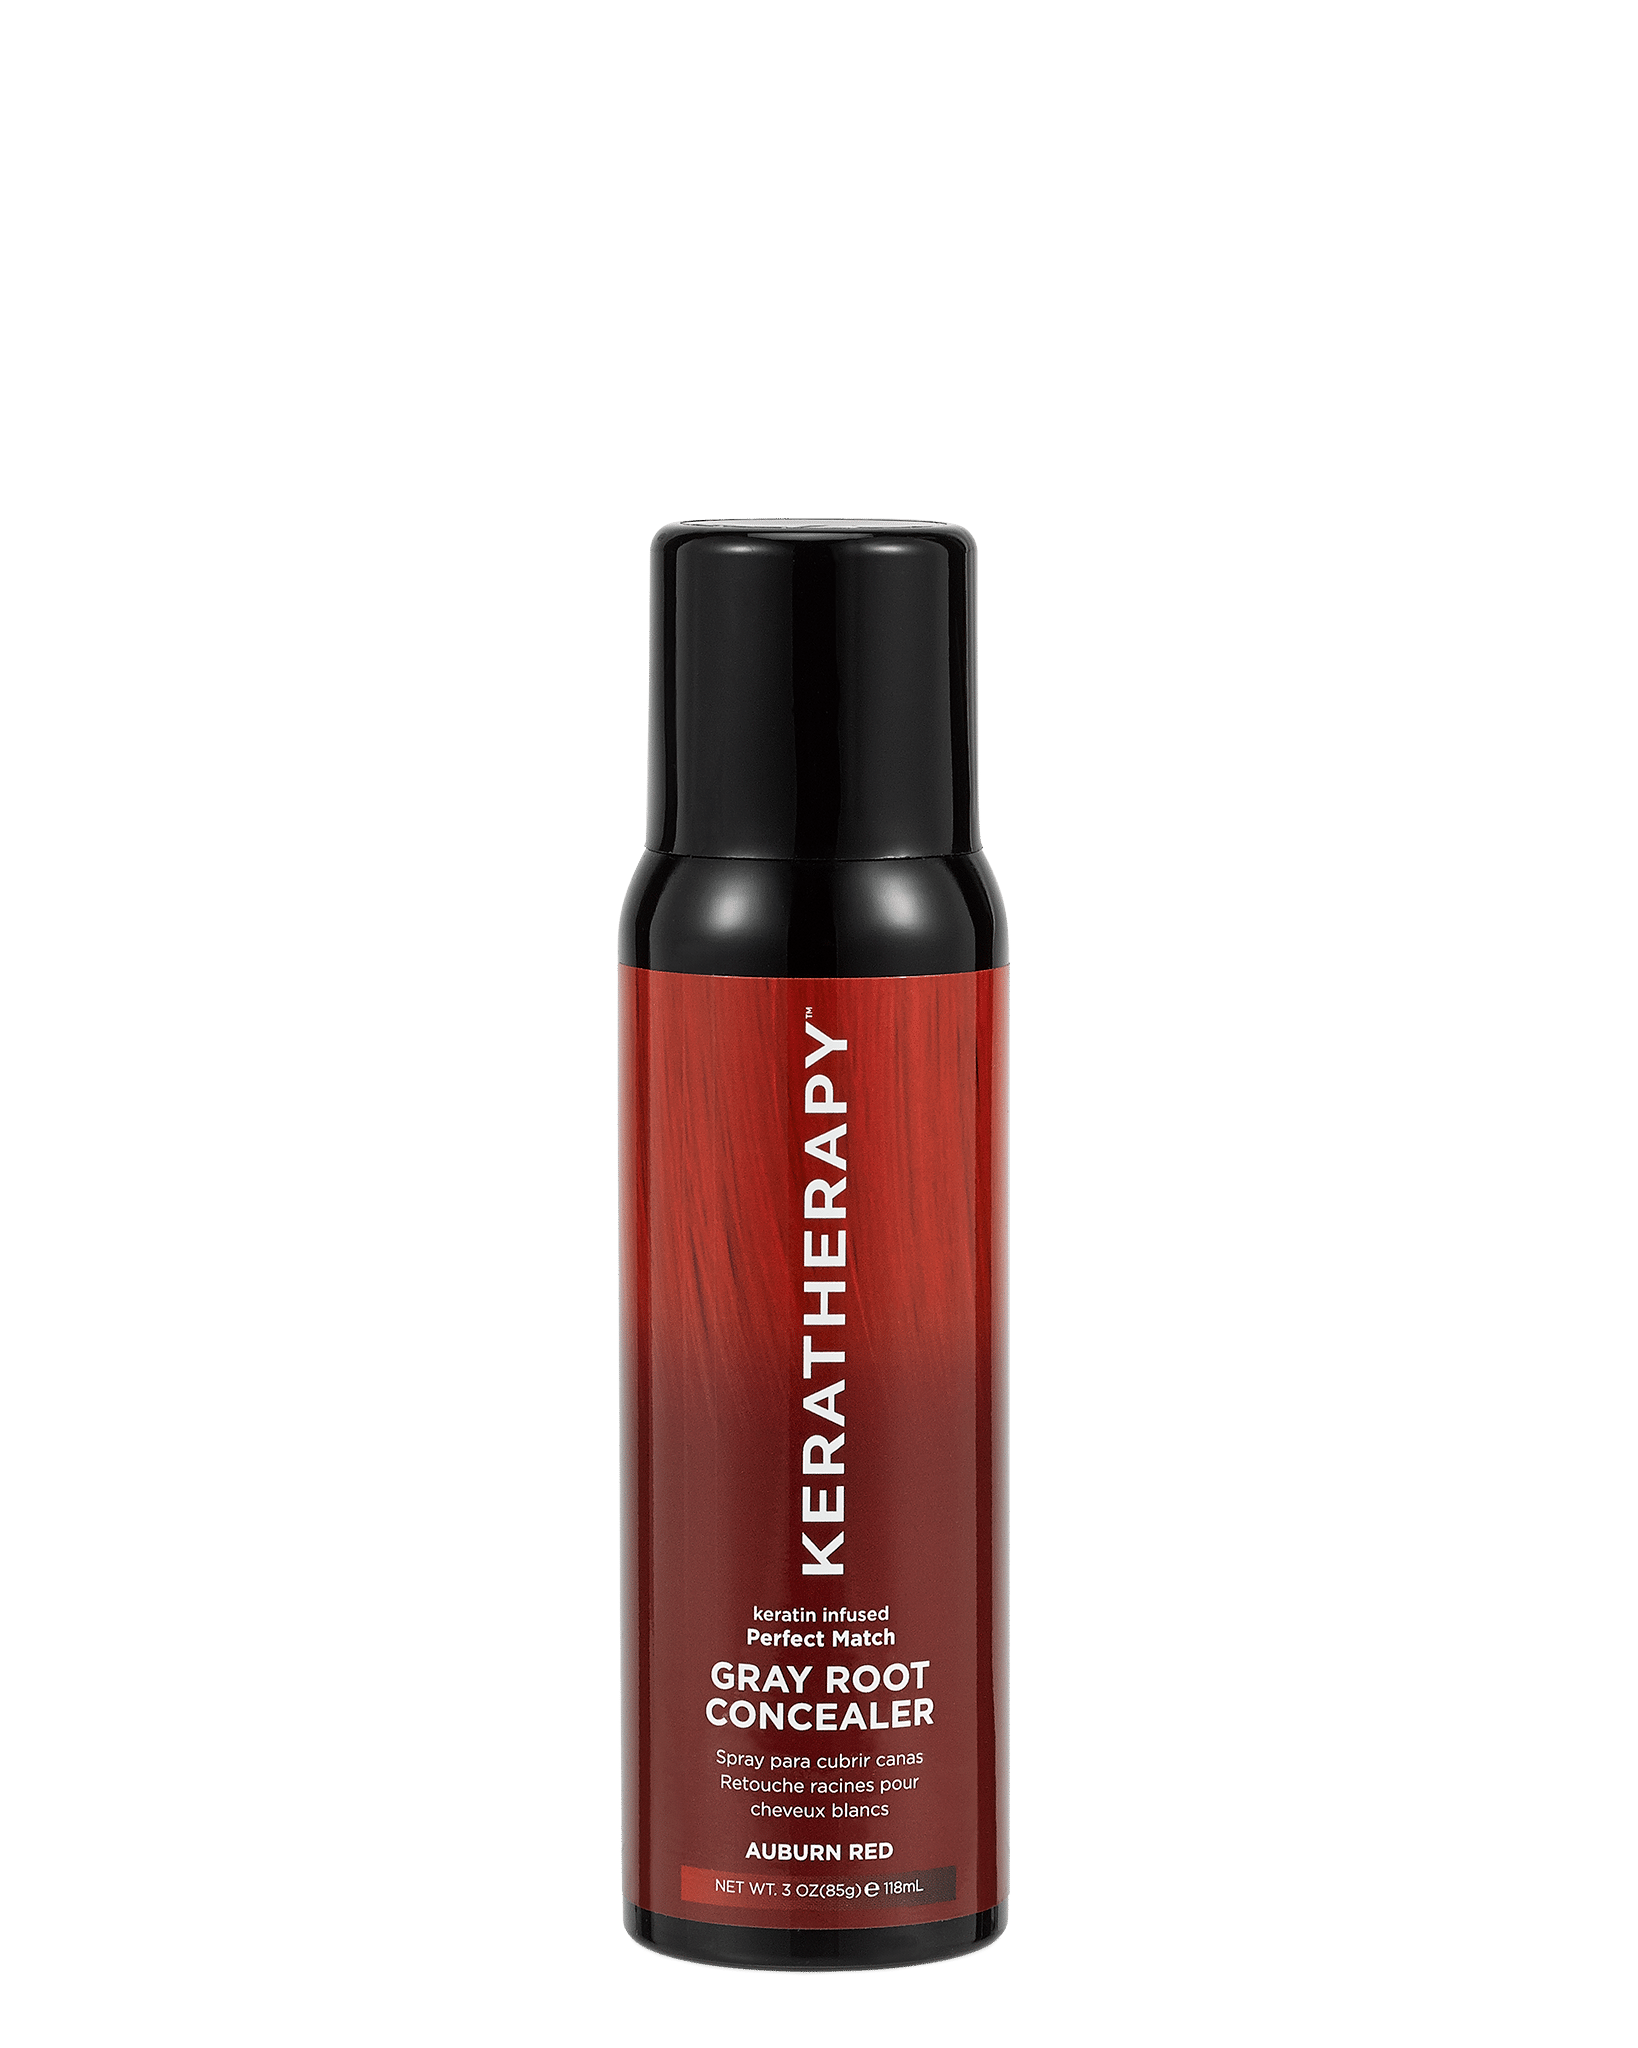 10_0001s_0004_Perfect-Match-Conceal-Auburn-Red